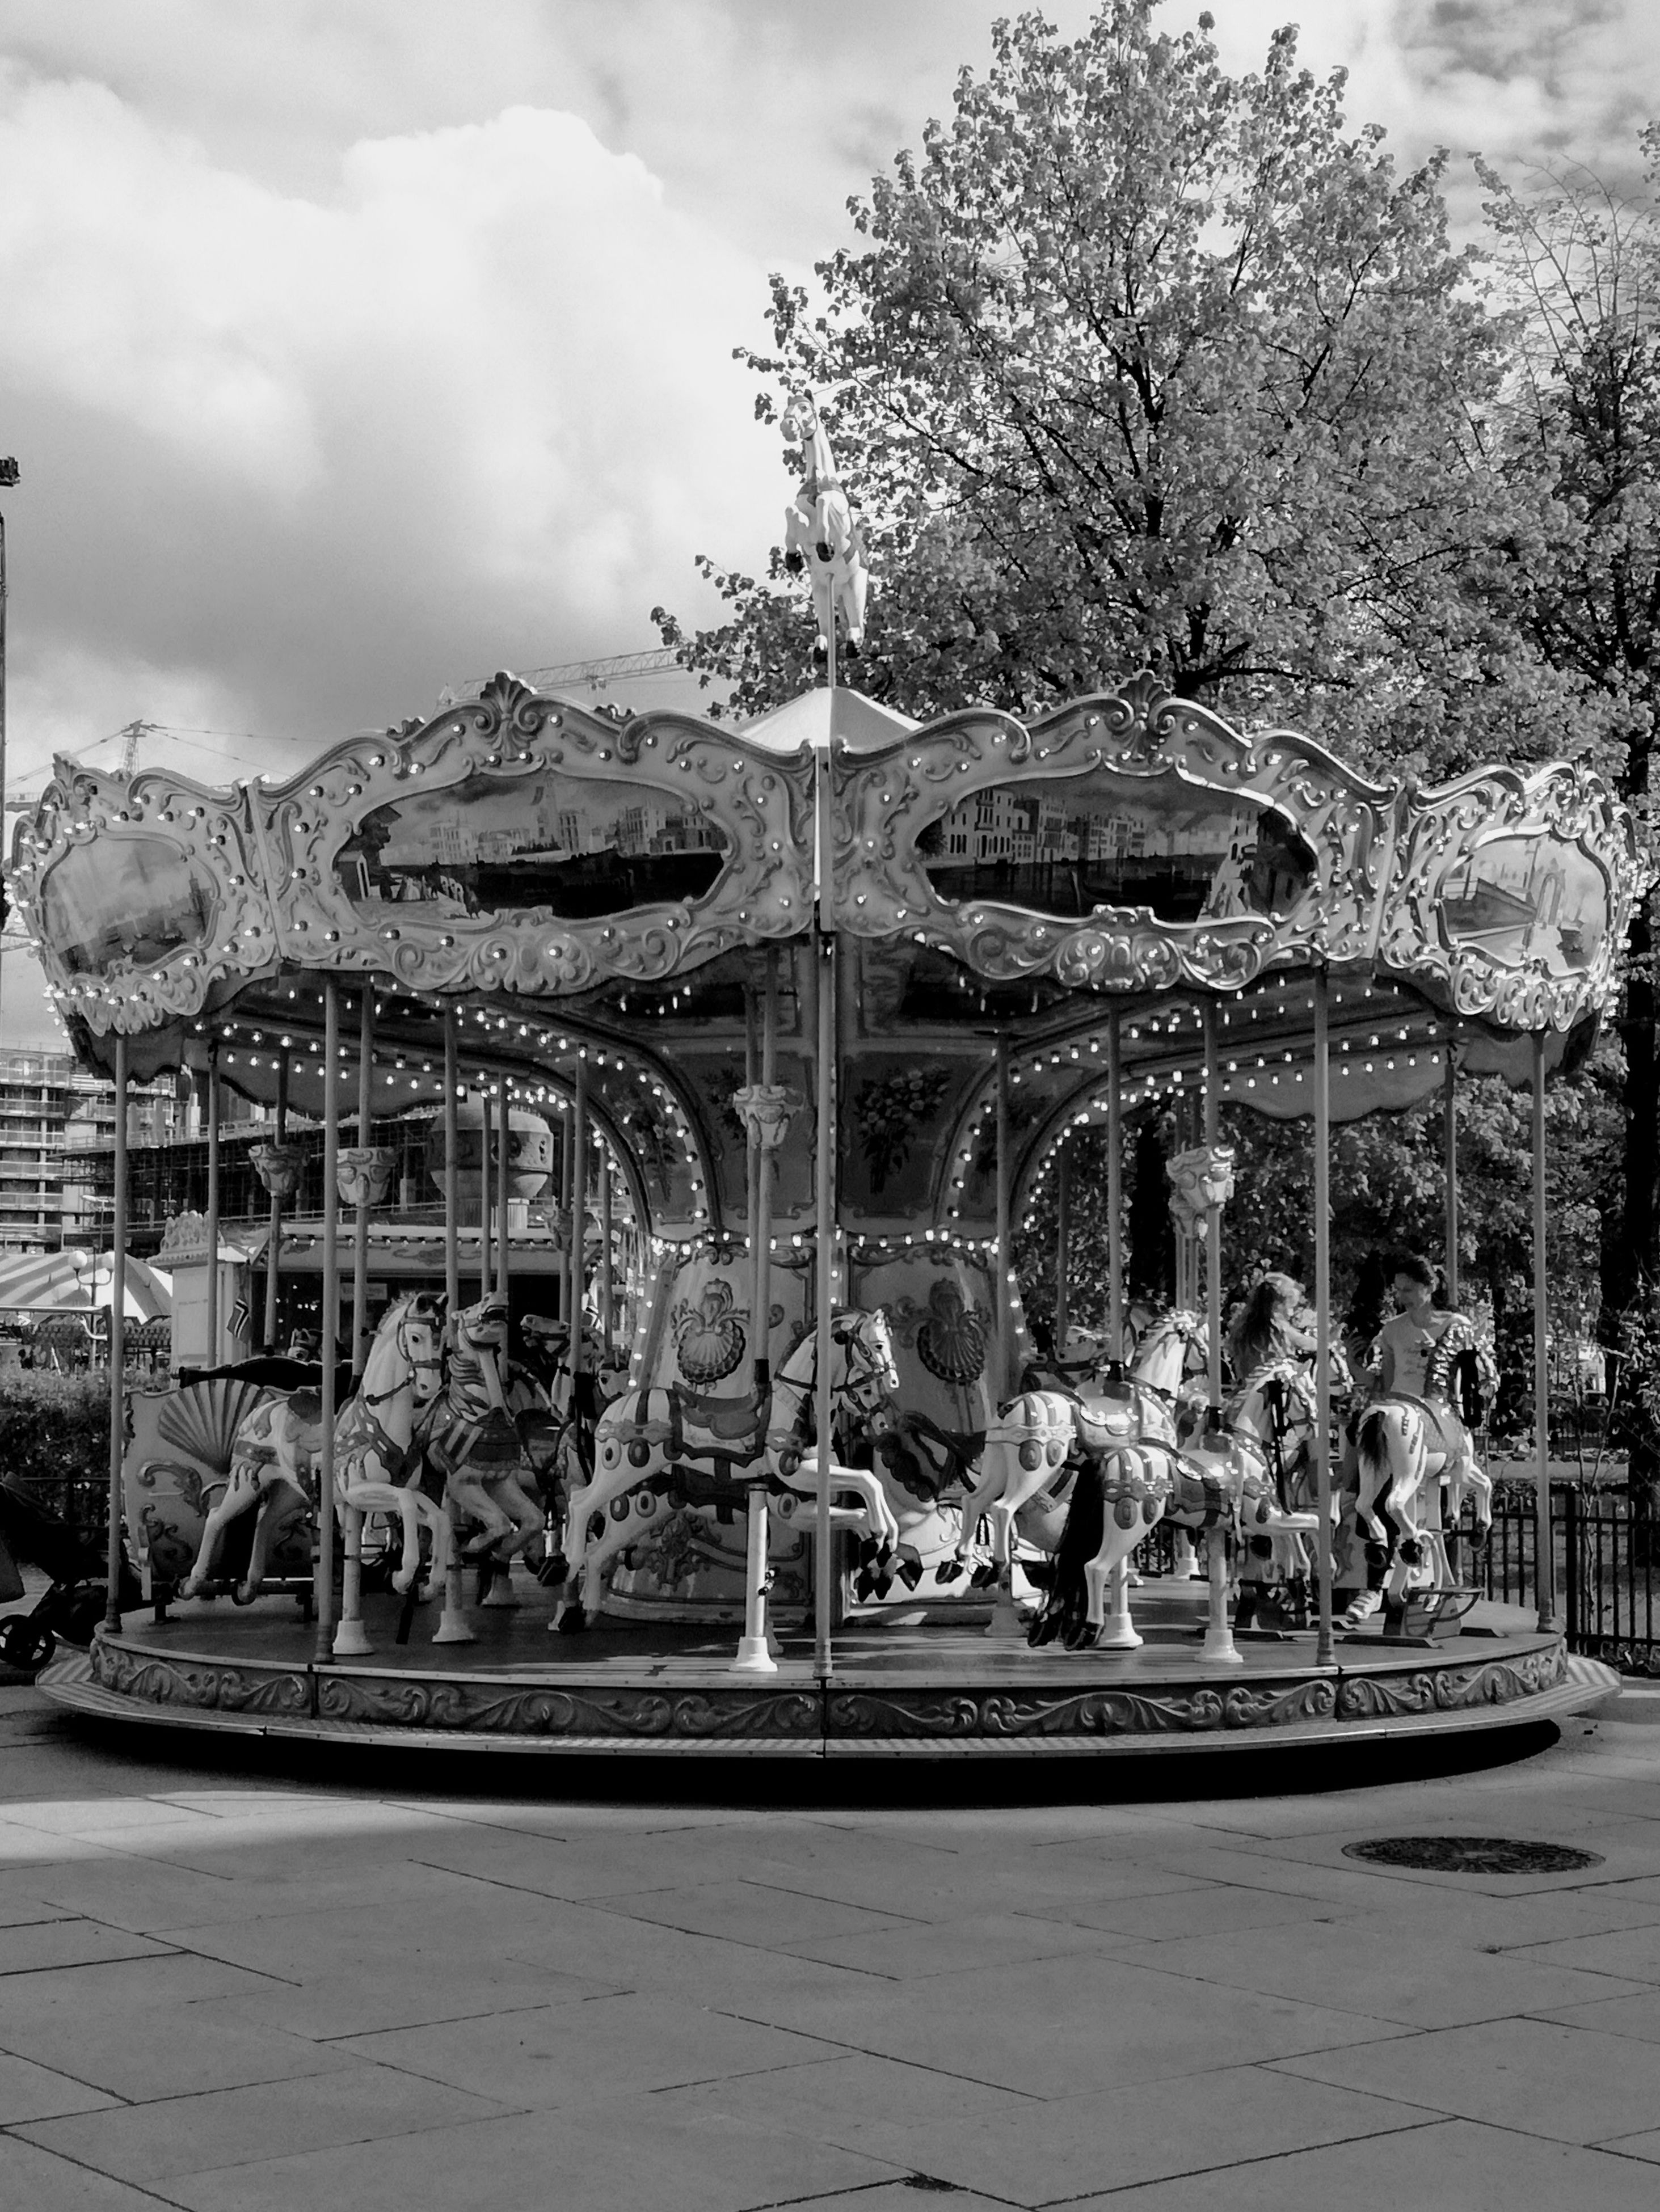 amusement park, arts culture and entertainment, carousel, amusement park ride, carousel horses, leisure activity, enjoyment, merry-go-round, outdoors, sky, day, sitting, tree, no people